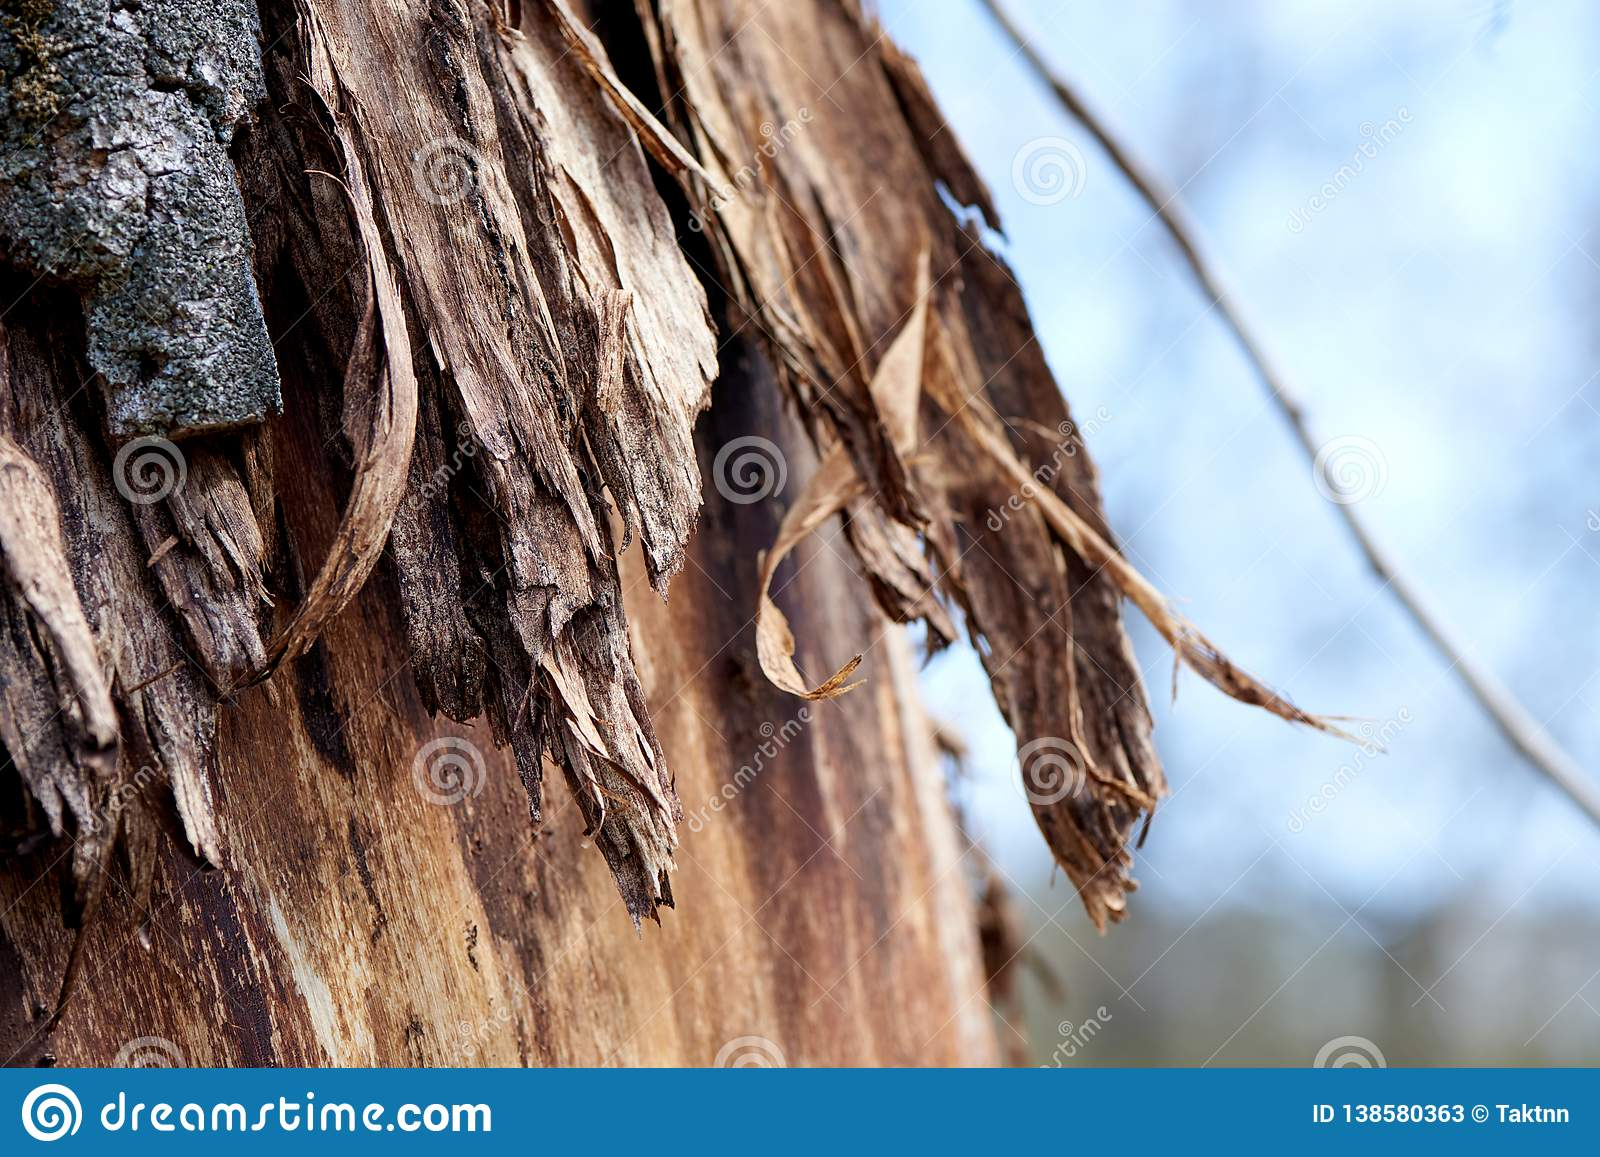 Bark on a tree partially flayed